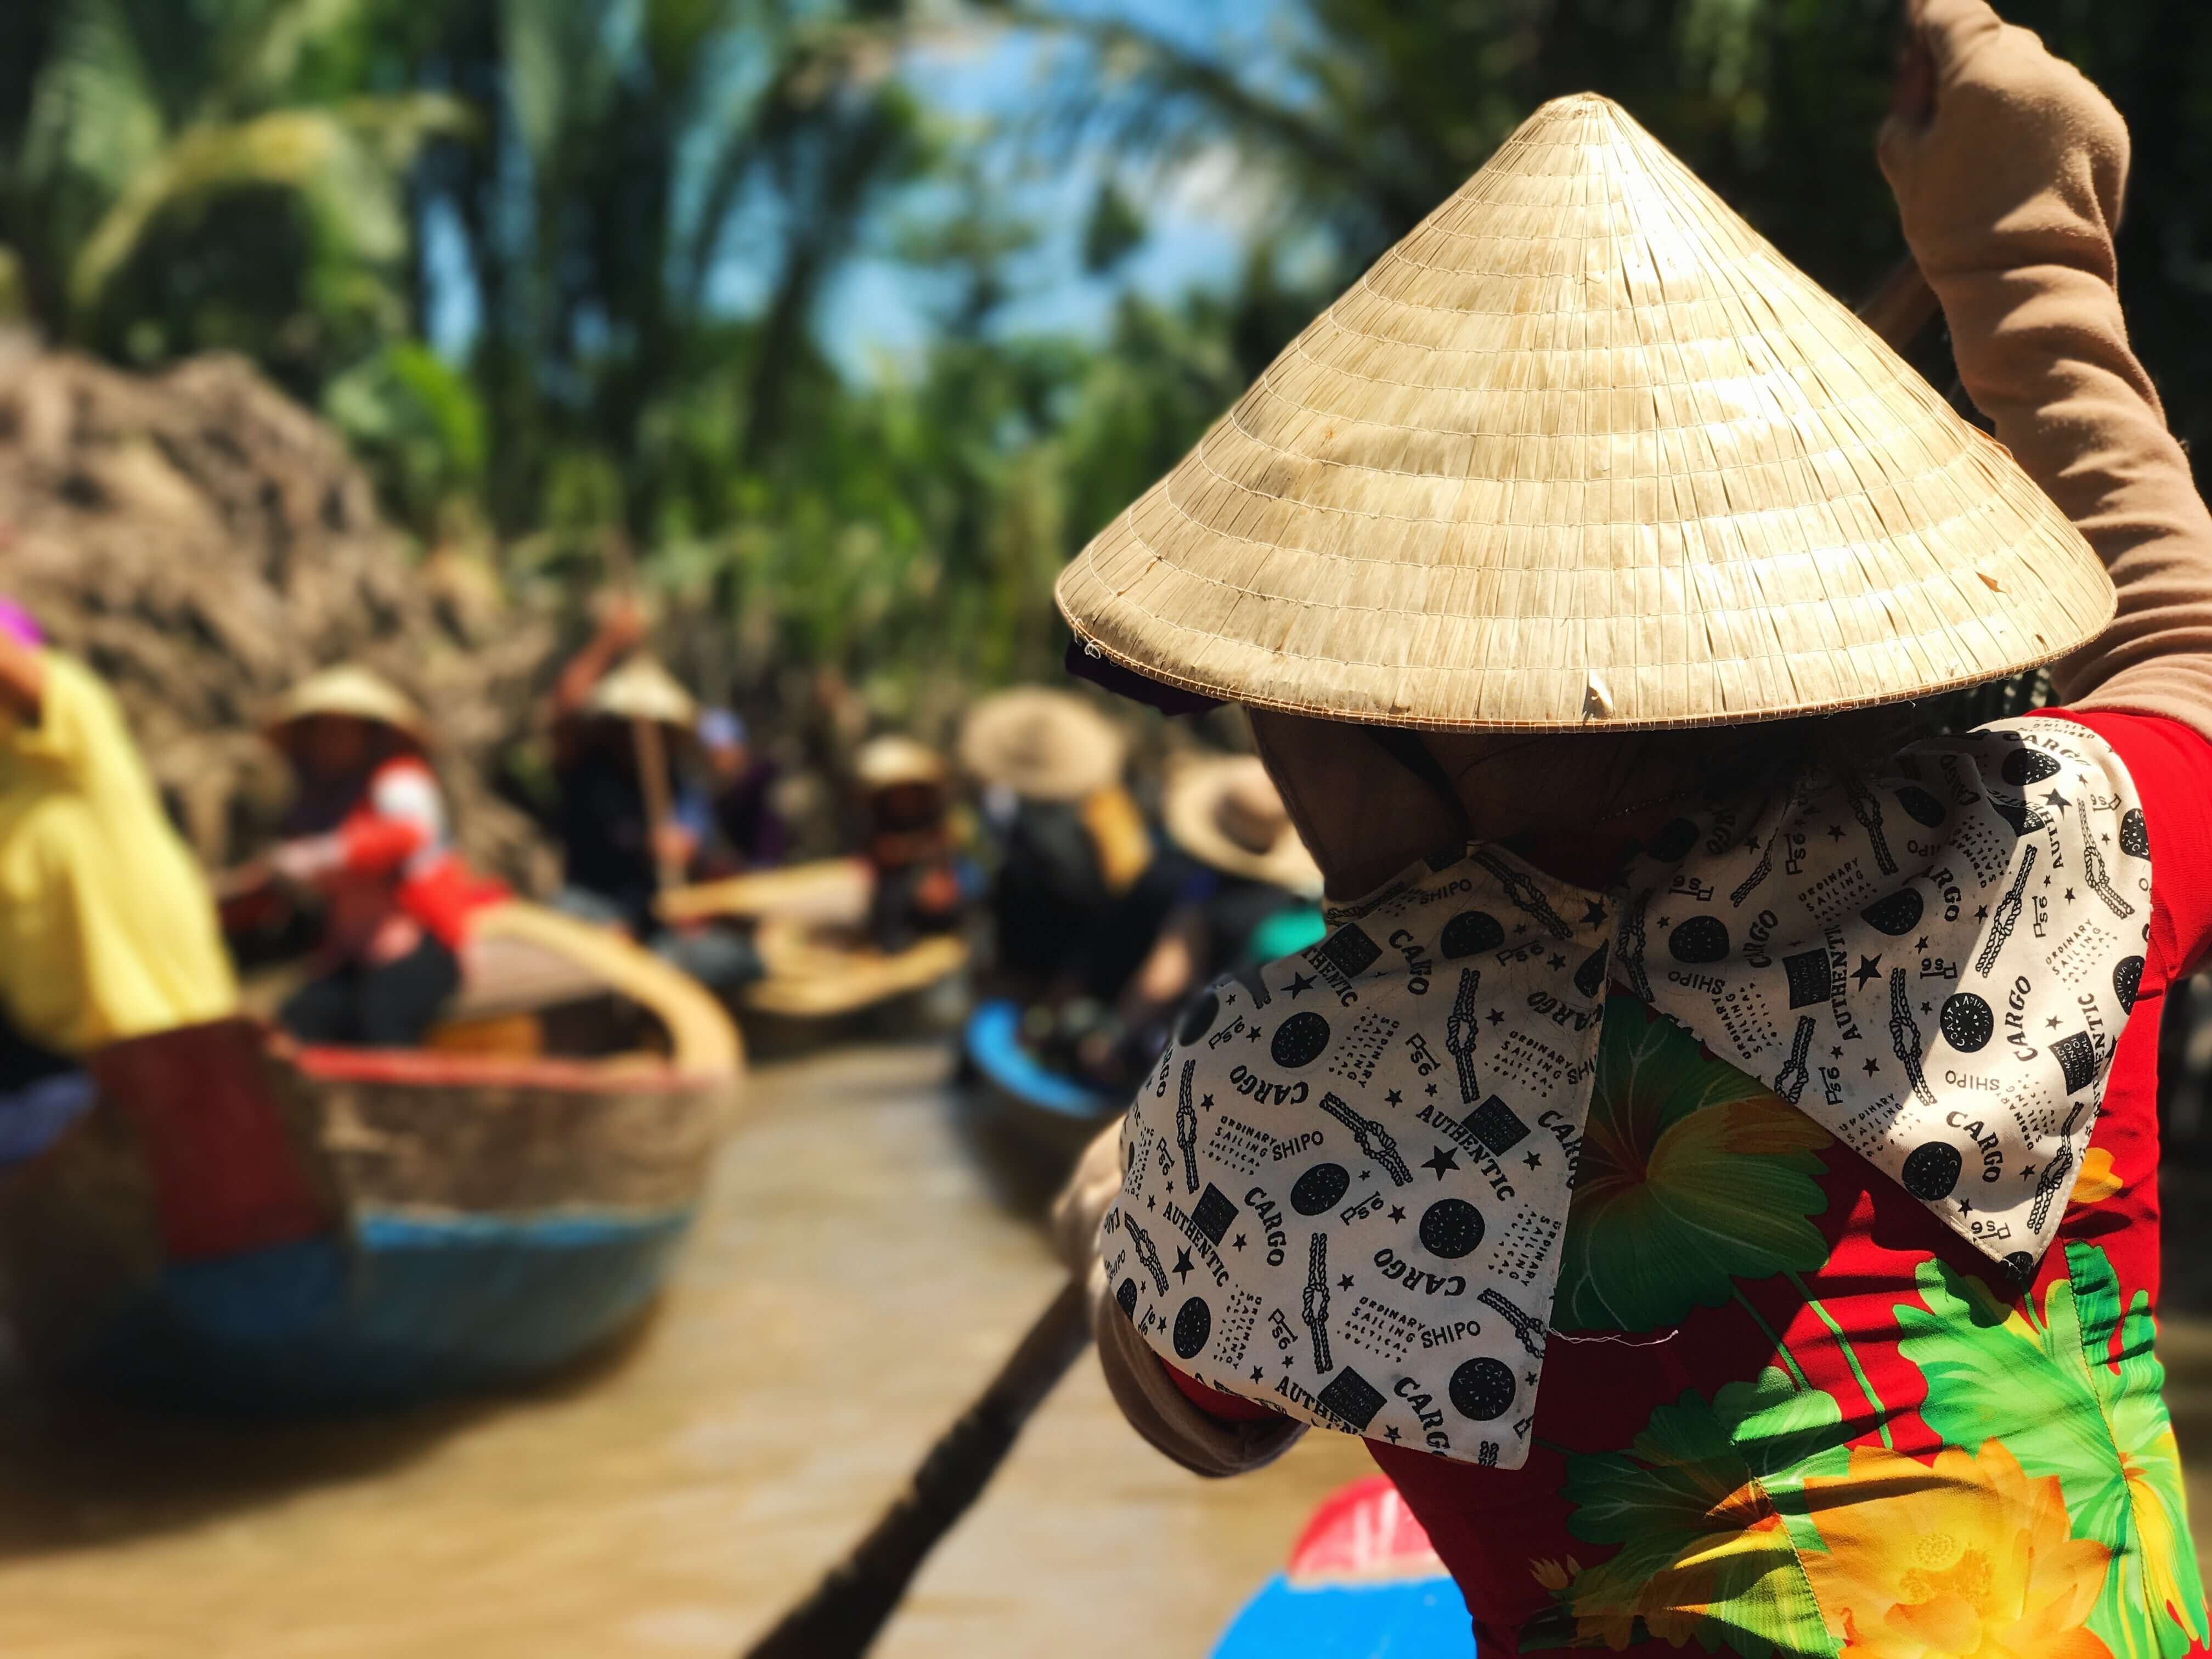 Take a day trip while in Ho Chi Minh City